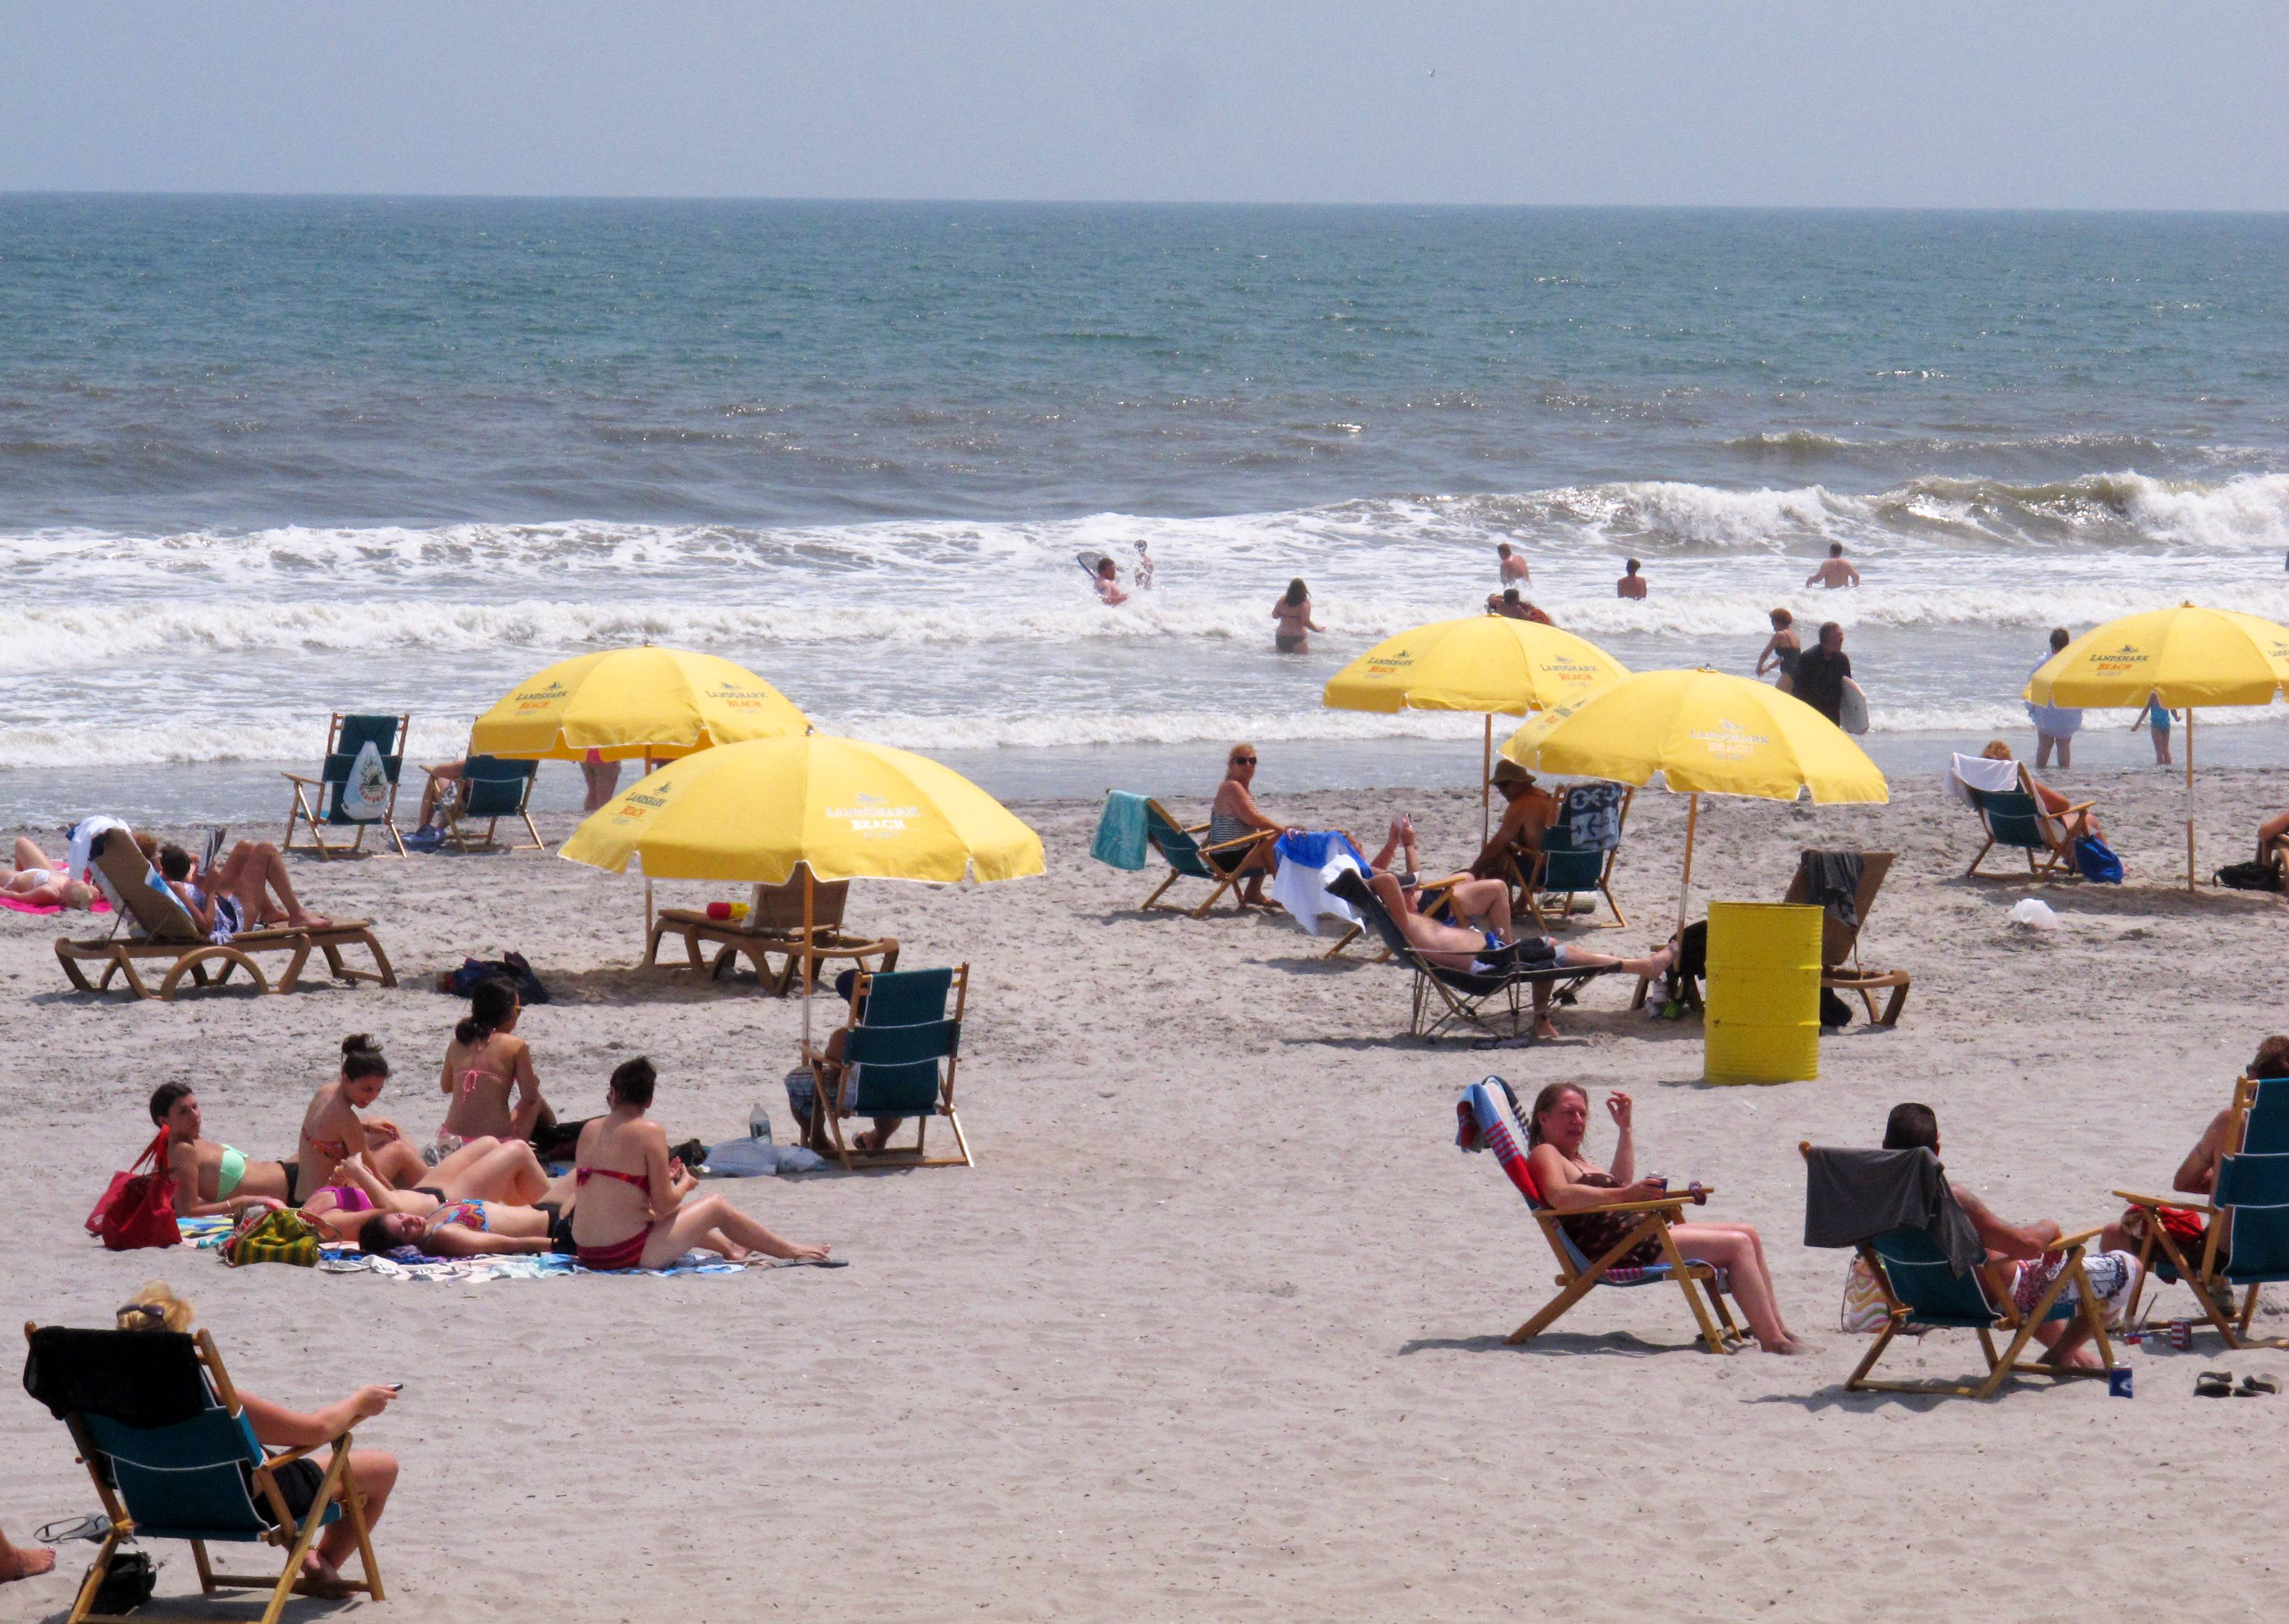 Beachgoers enjoy a sunny day on the beach in Atlantic City, N.J. The city is one of five Jersey shore beach towns that don't require visitors to buy beach badges.